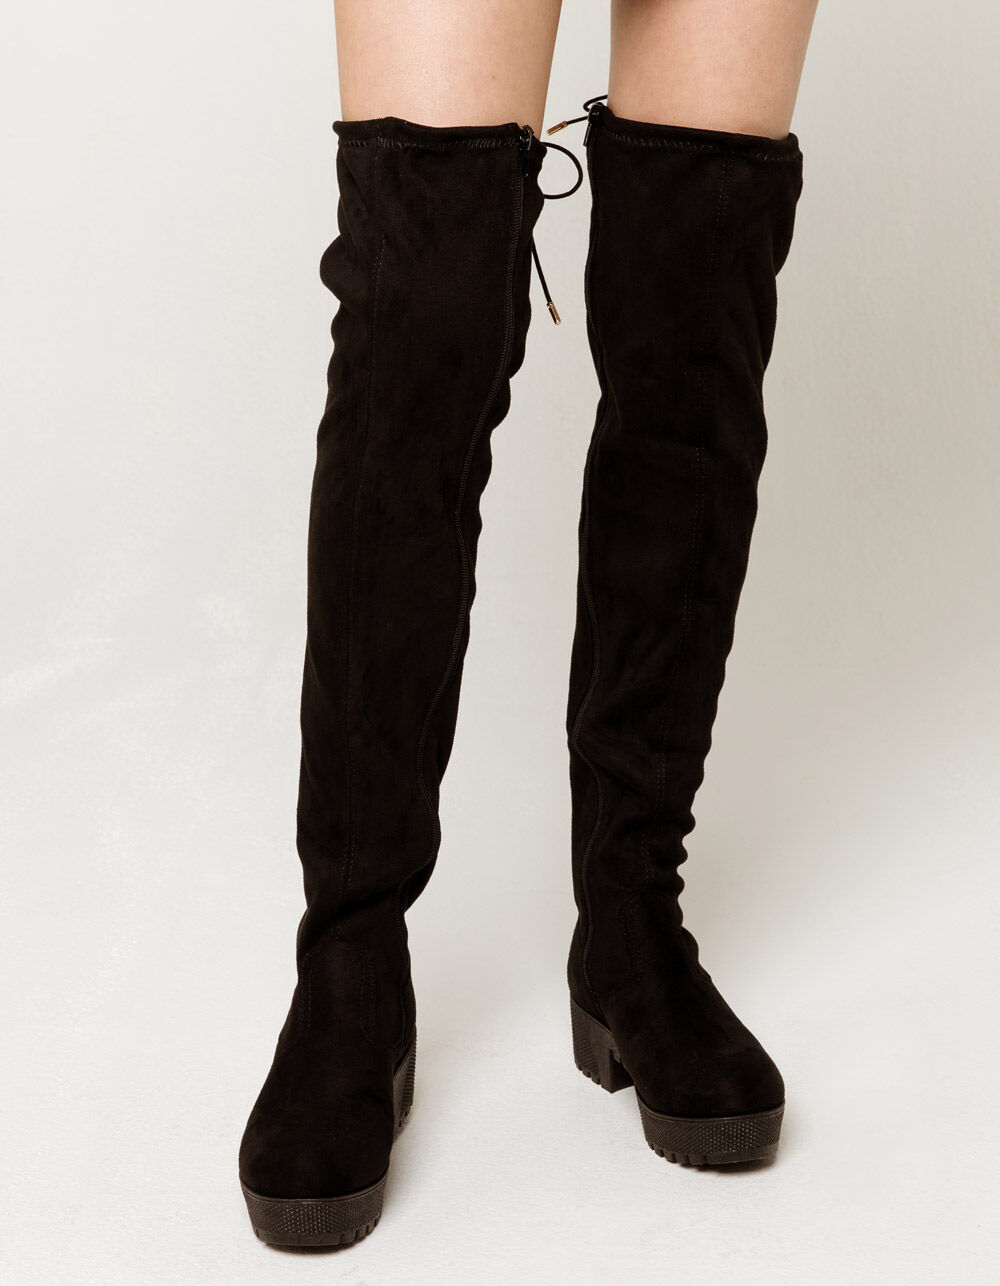 BAMBOO Lug Sole Over The Knee Boots